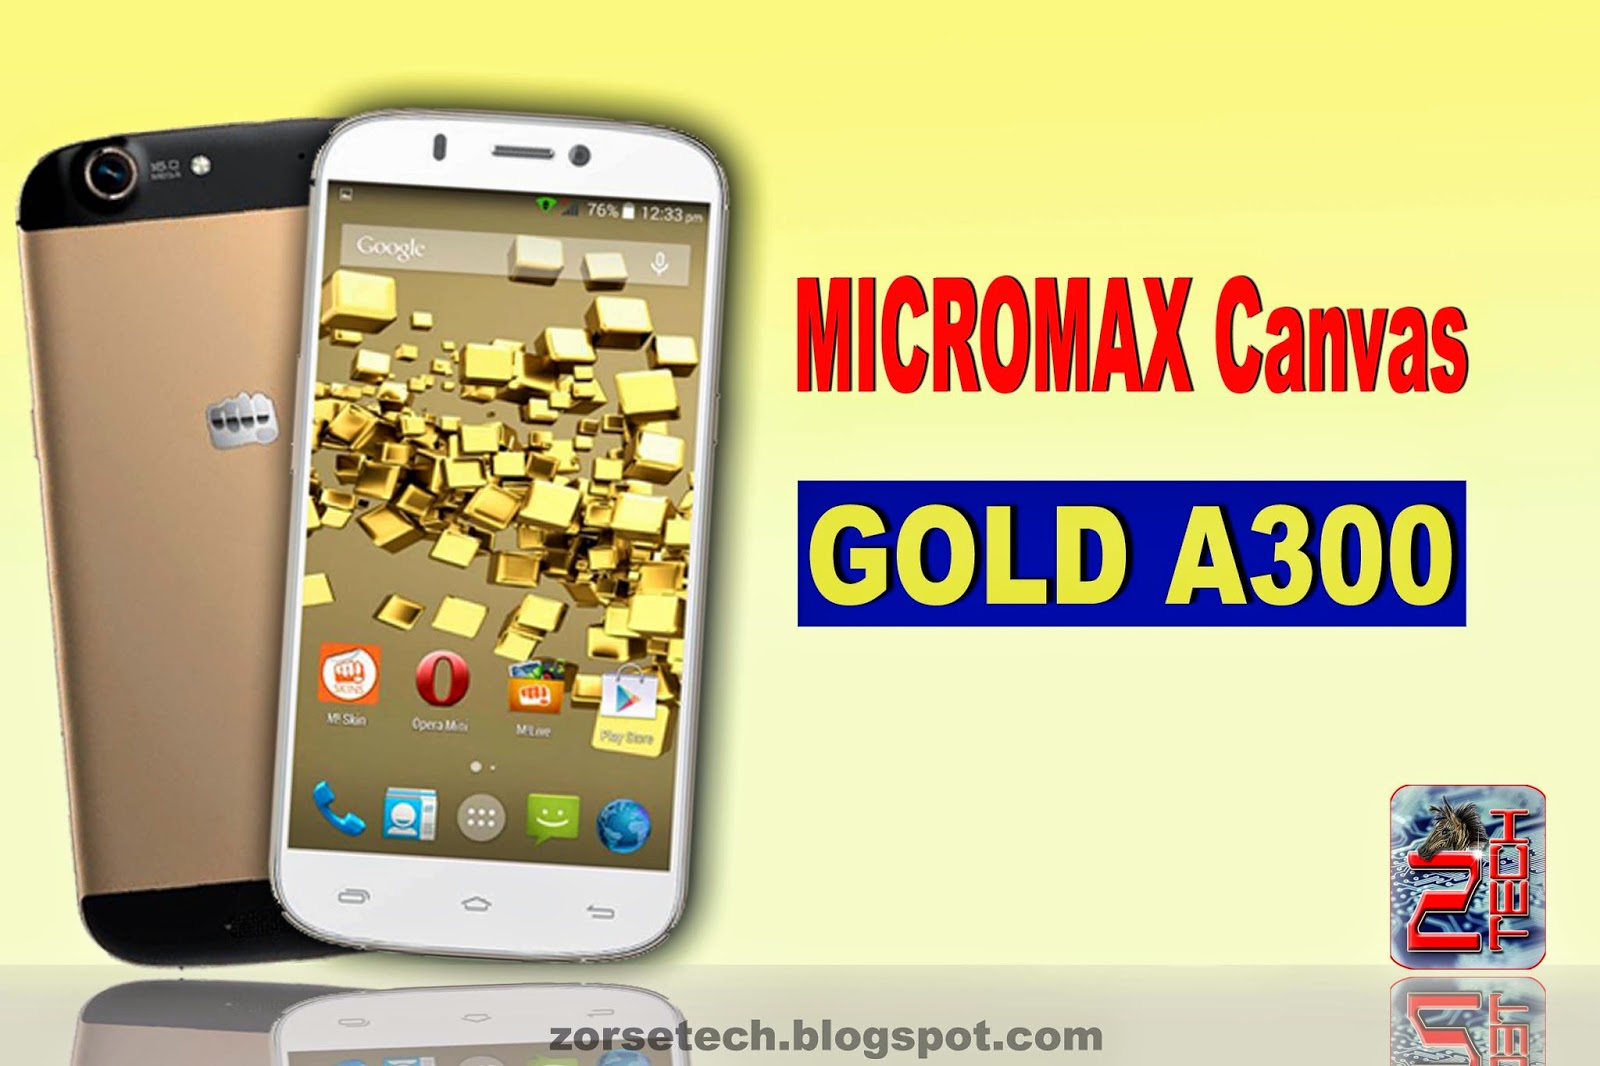 Micromax launched theri new smartphone canvas gold a300